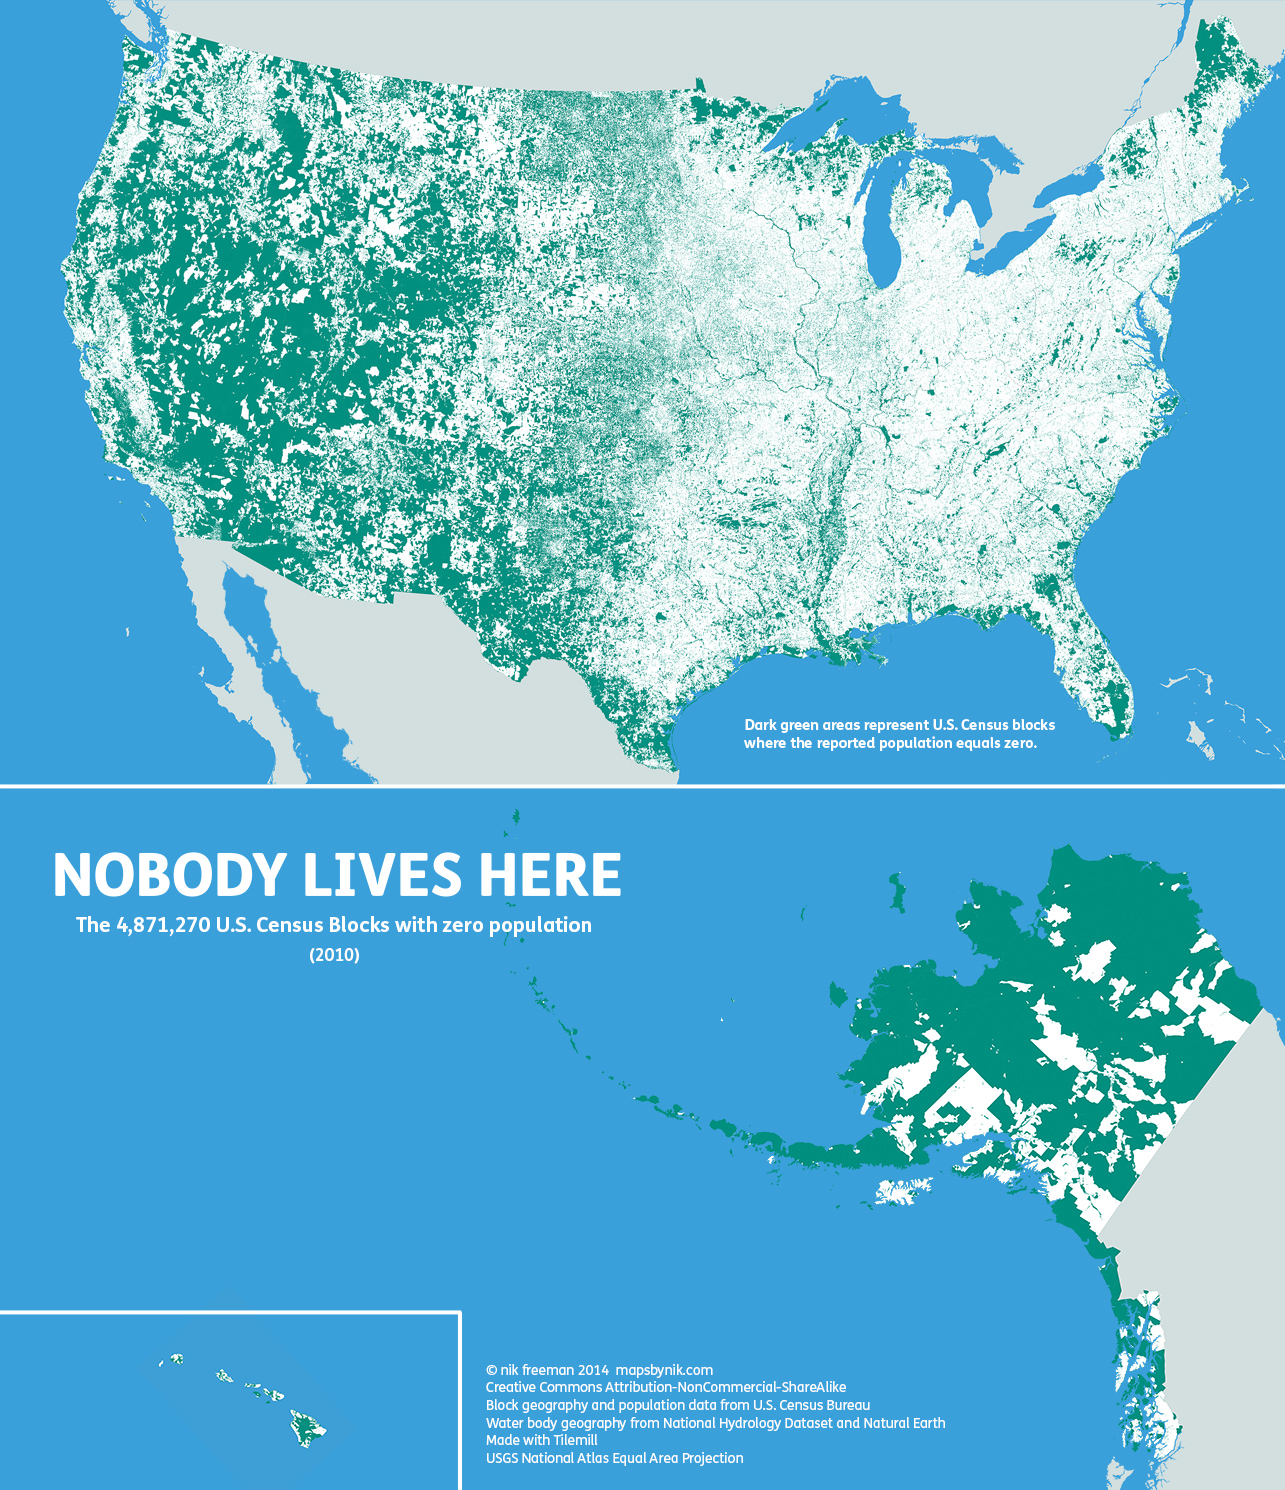 Population Density Where People Dont Live in the US